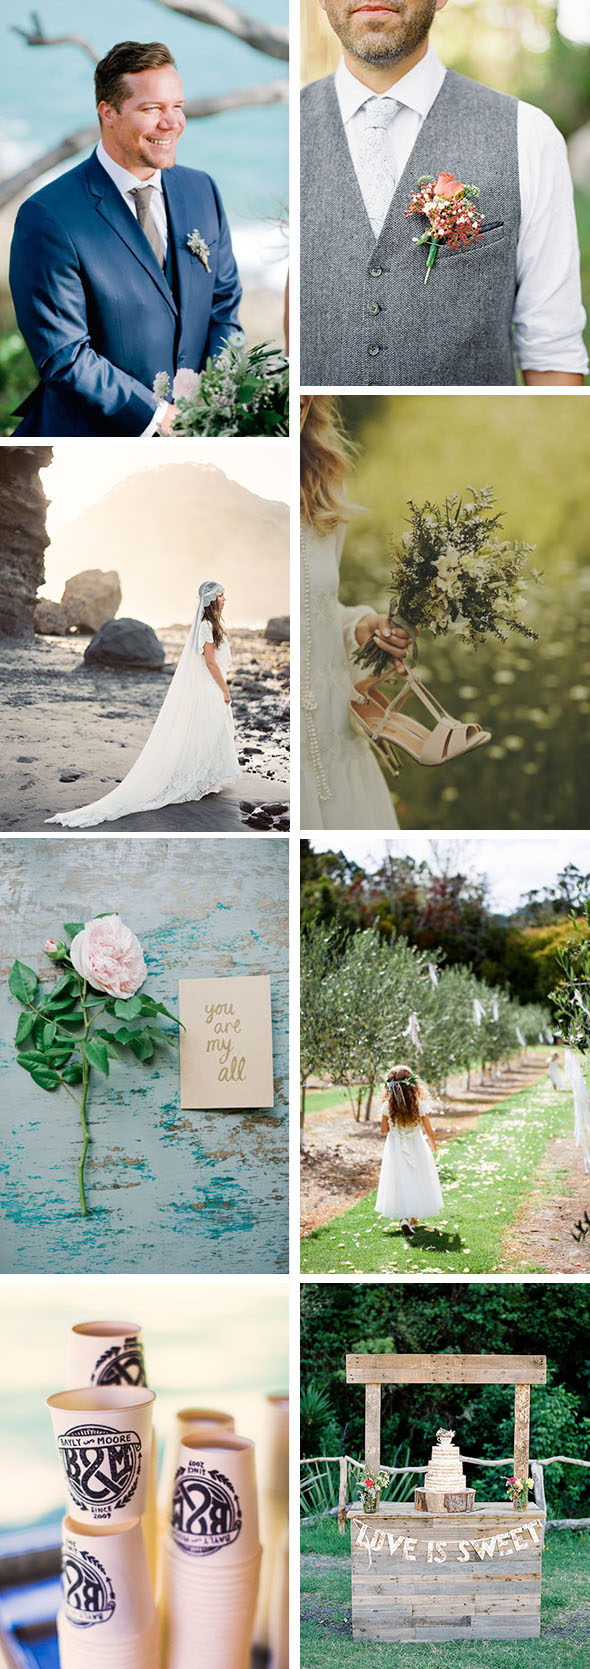 New Zealand Wedding Inspiration